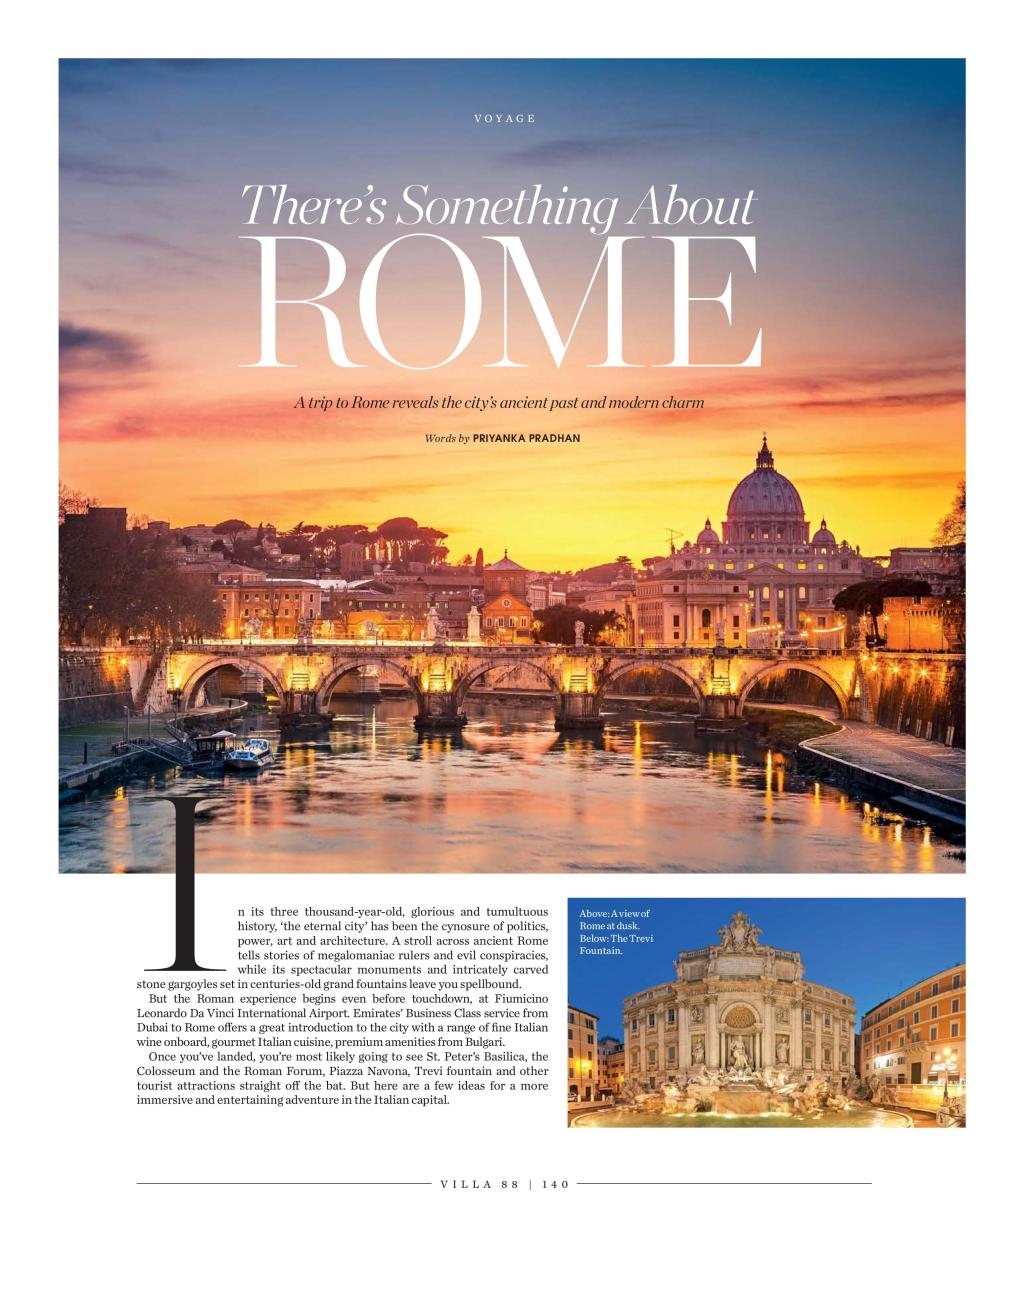 There's Something About Rome: Published in villa 88 Magazine, September 2015 issue